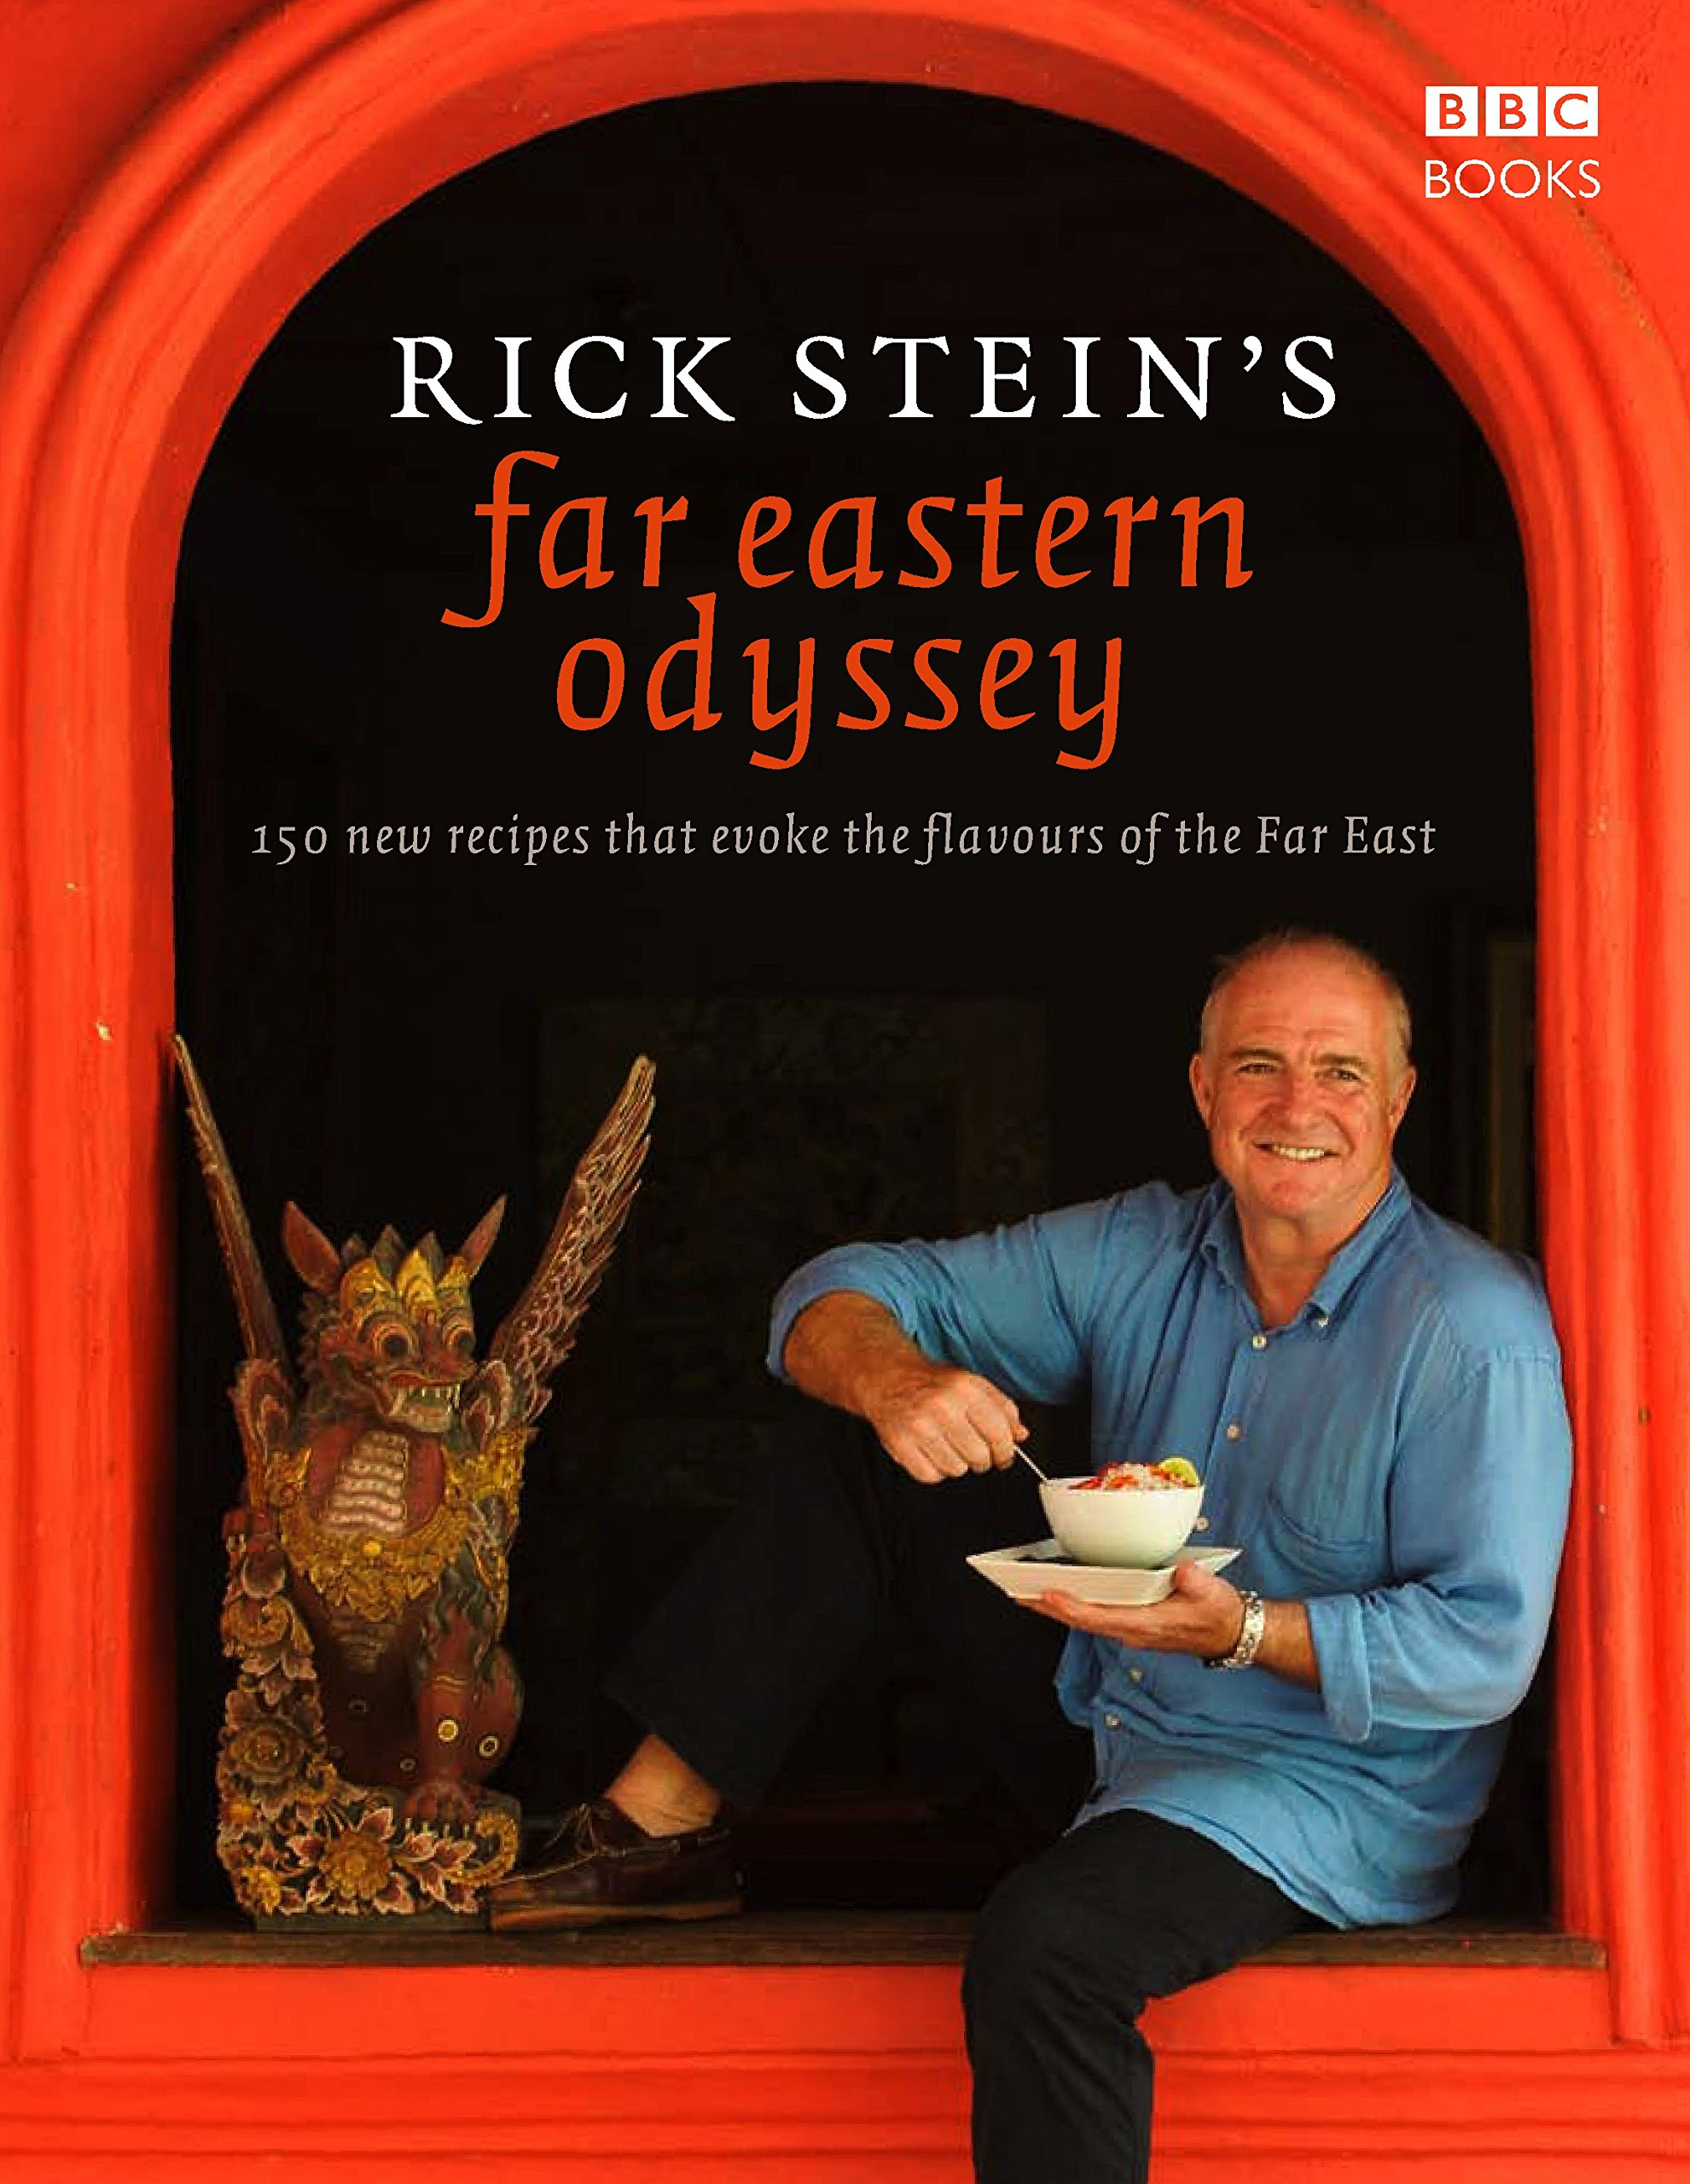 Download Rick Stein's Far Eastern Odyssey: 150 New Recipes Evoking the Flavours of the Far East pdf